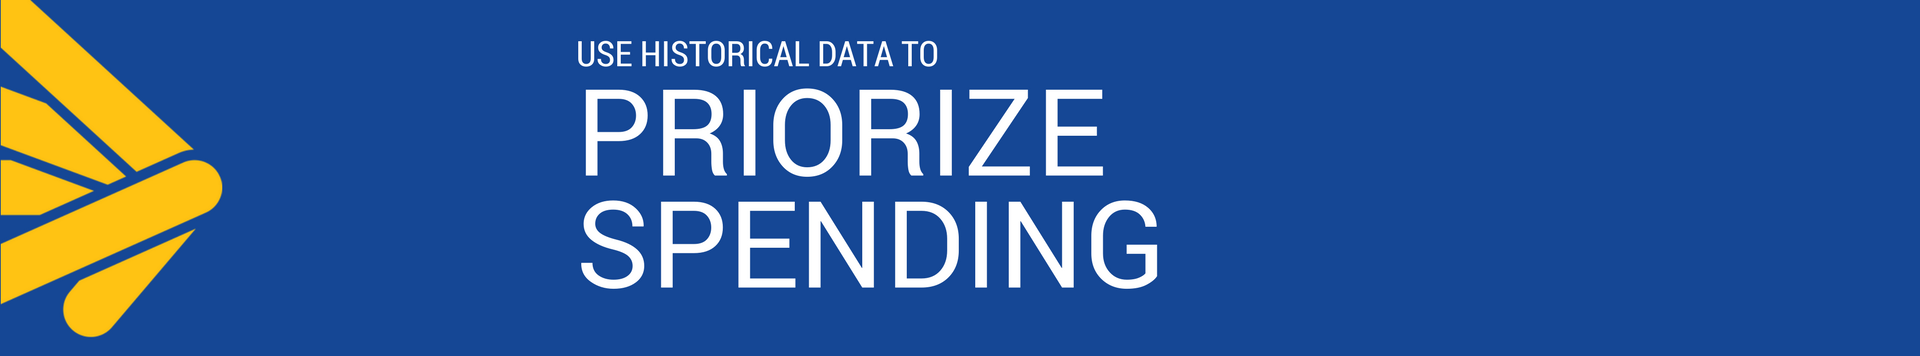 use historical data to prioritize spending